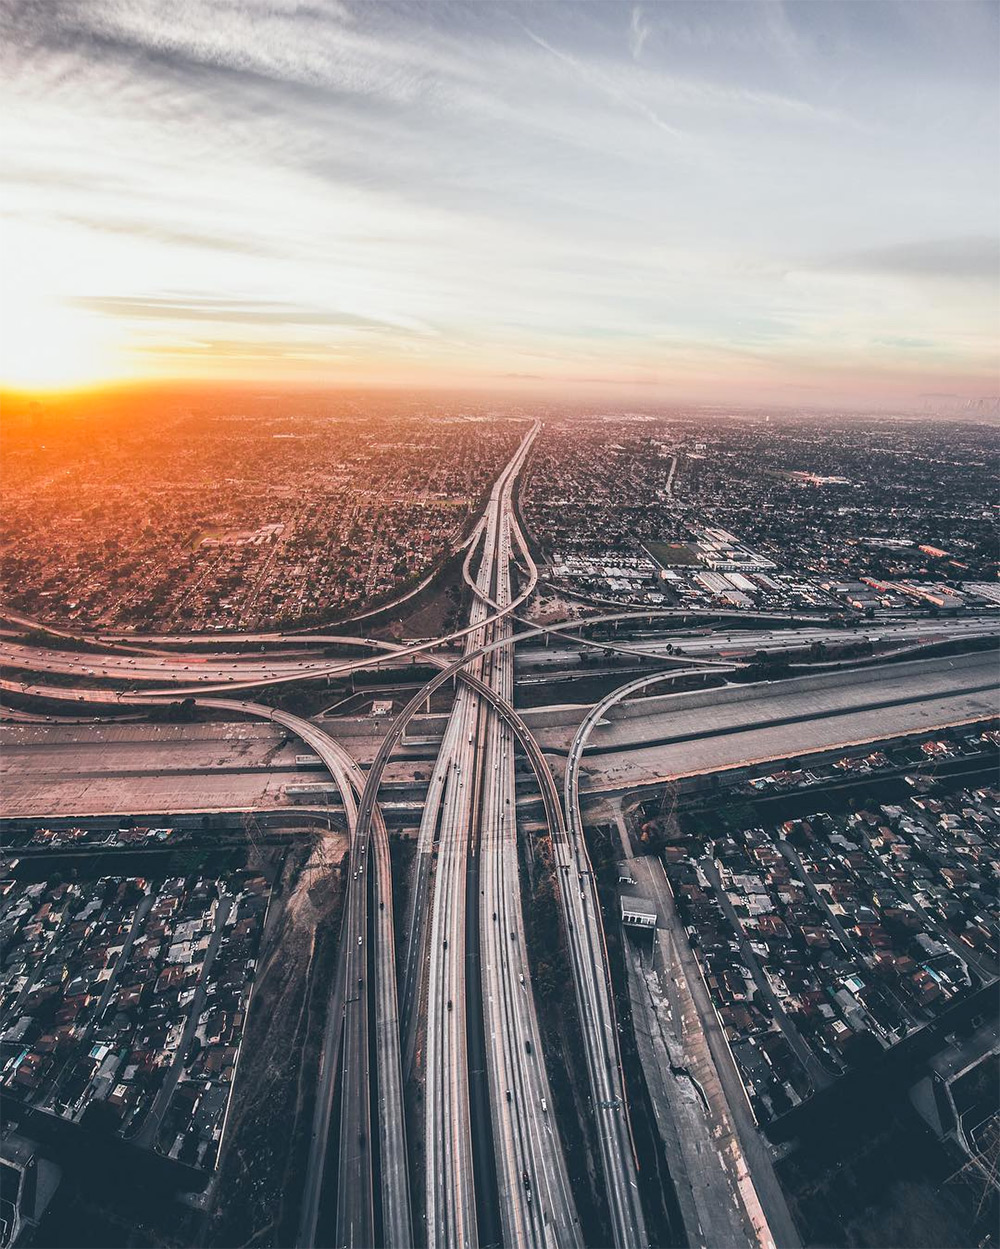 Sky-High Images of Los Angeles at Dusk and Dawn by Dylan Schwartz